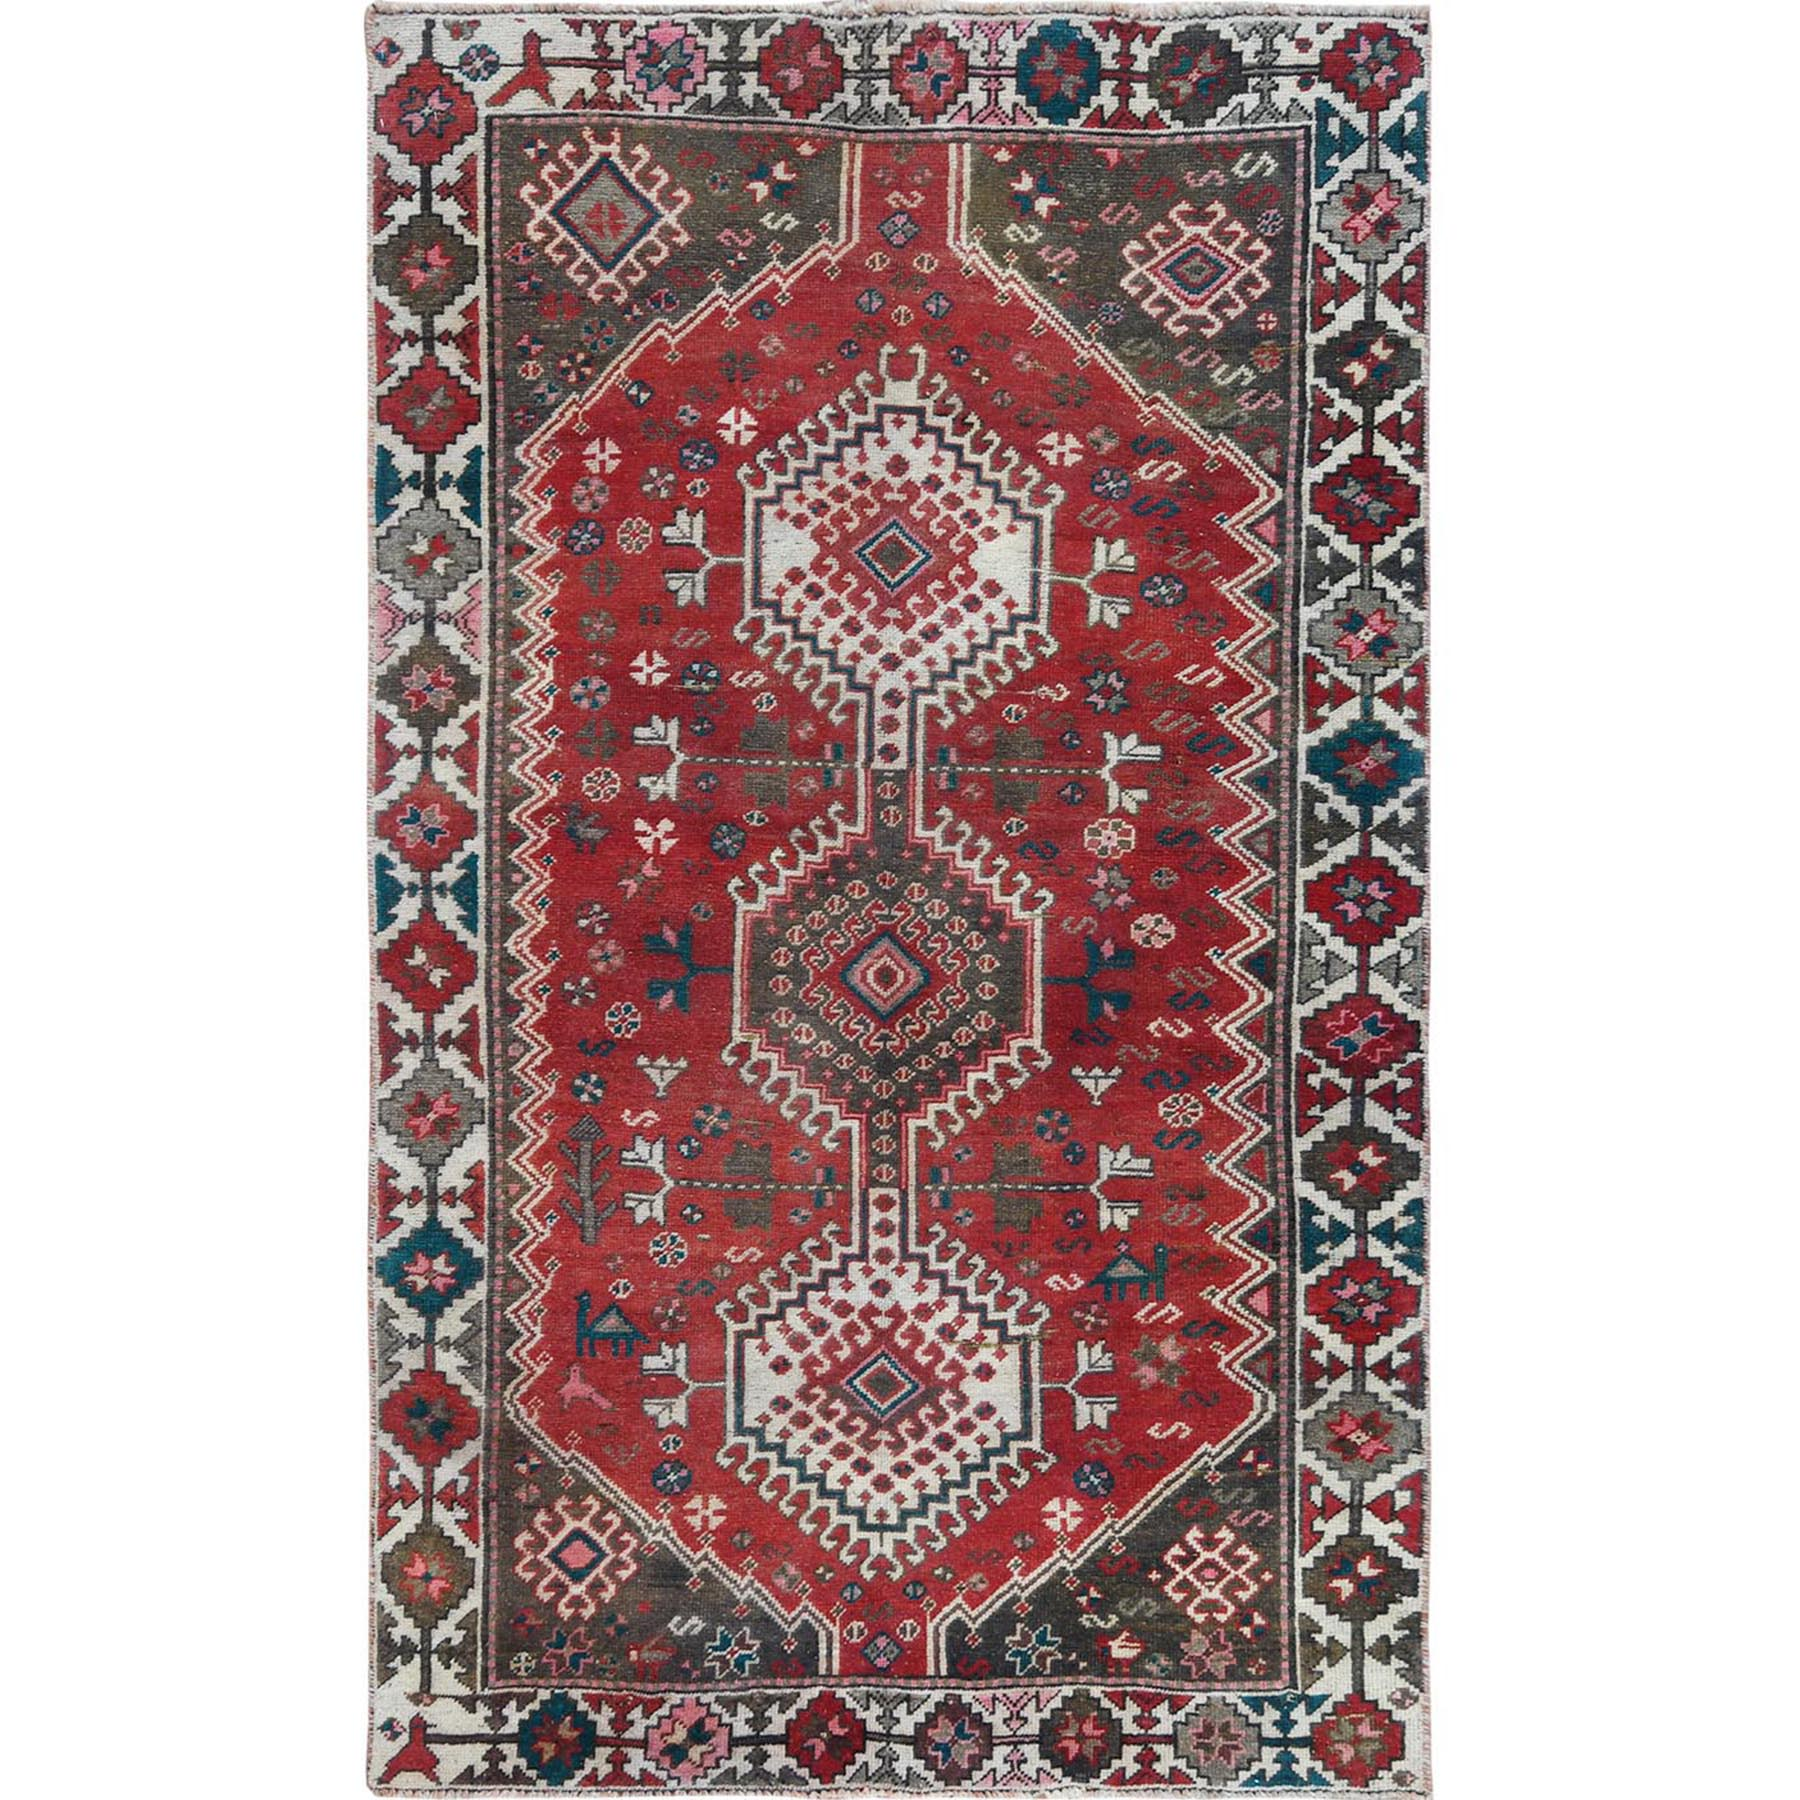 "4'x6'10"" Vintage Persian Qashqai Red Pure Wool Cropped Thin Clean Bohemian Hand Knotted Oriental Rug"